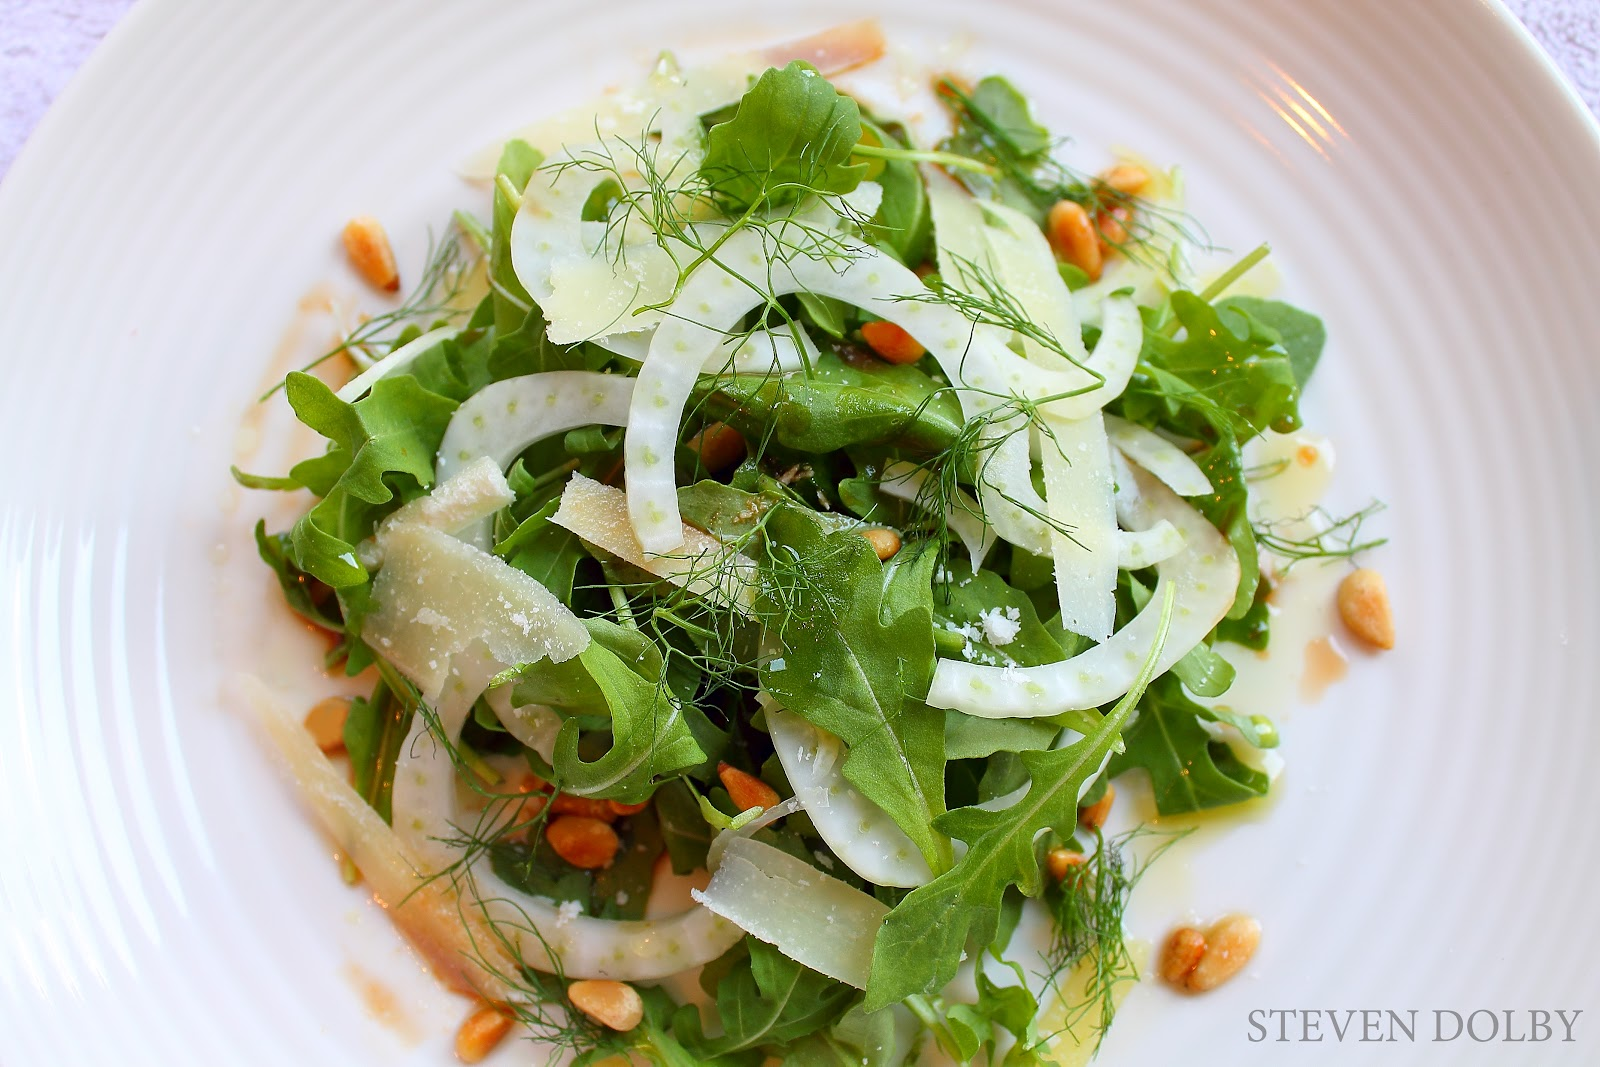 Arugula salad with Fennel, Parmesan, toasted Pine Nuts ...